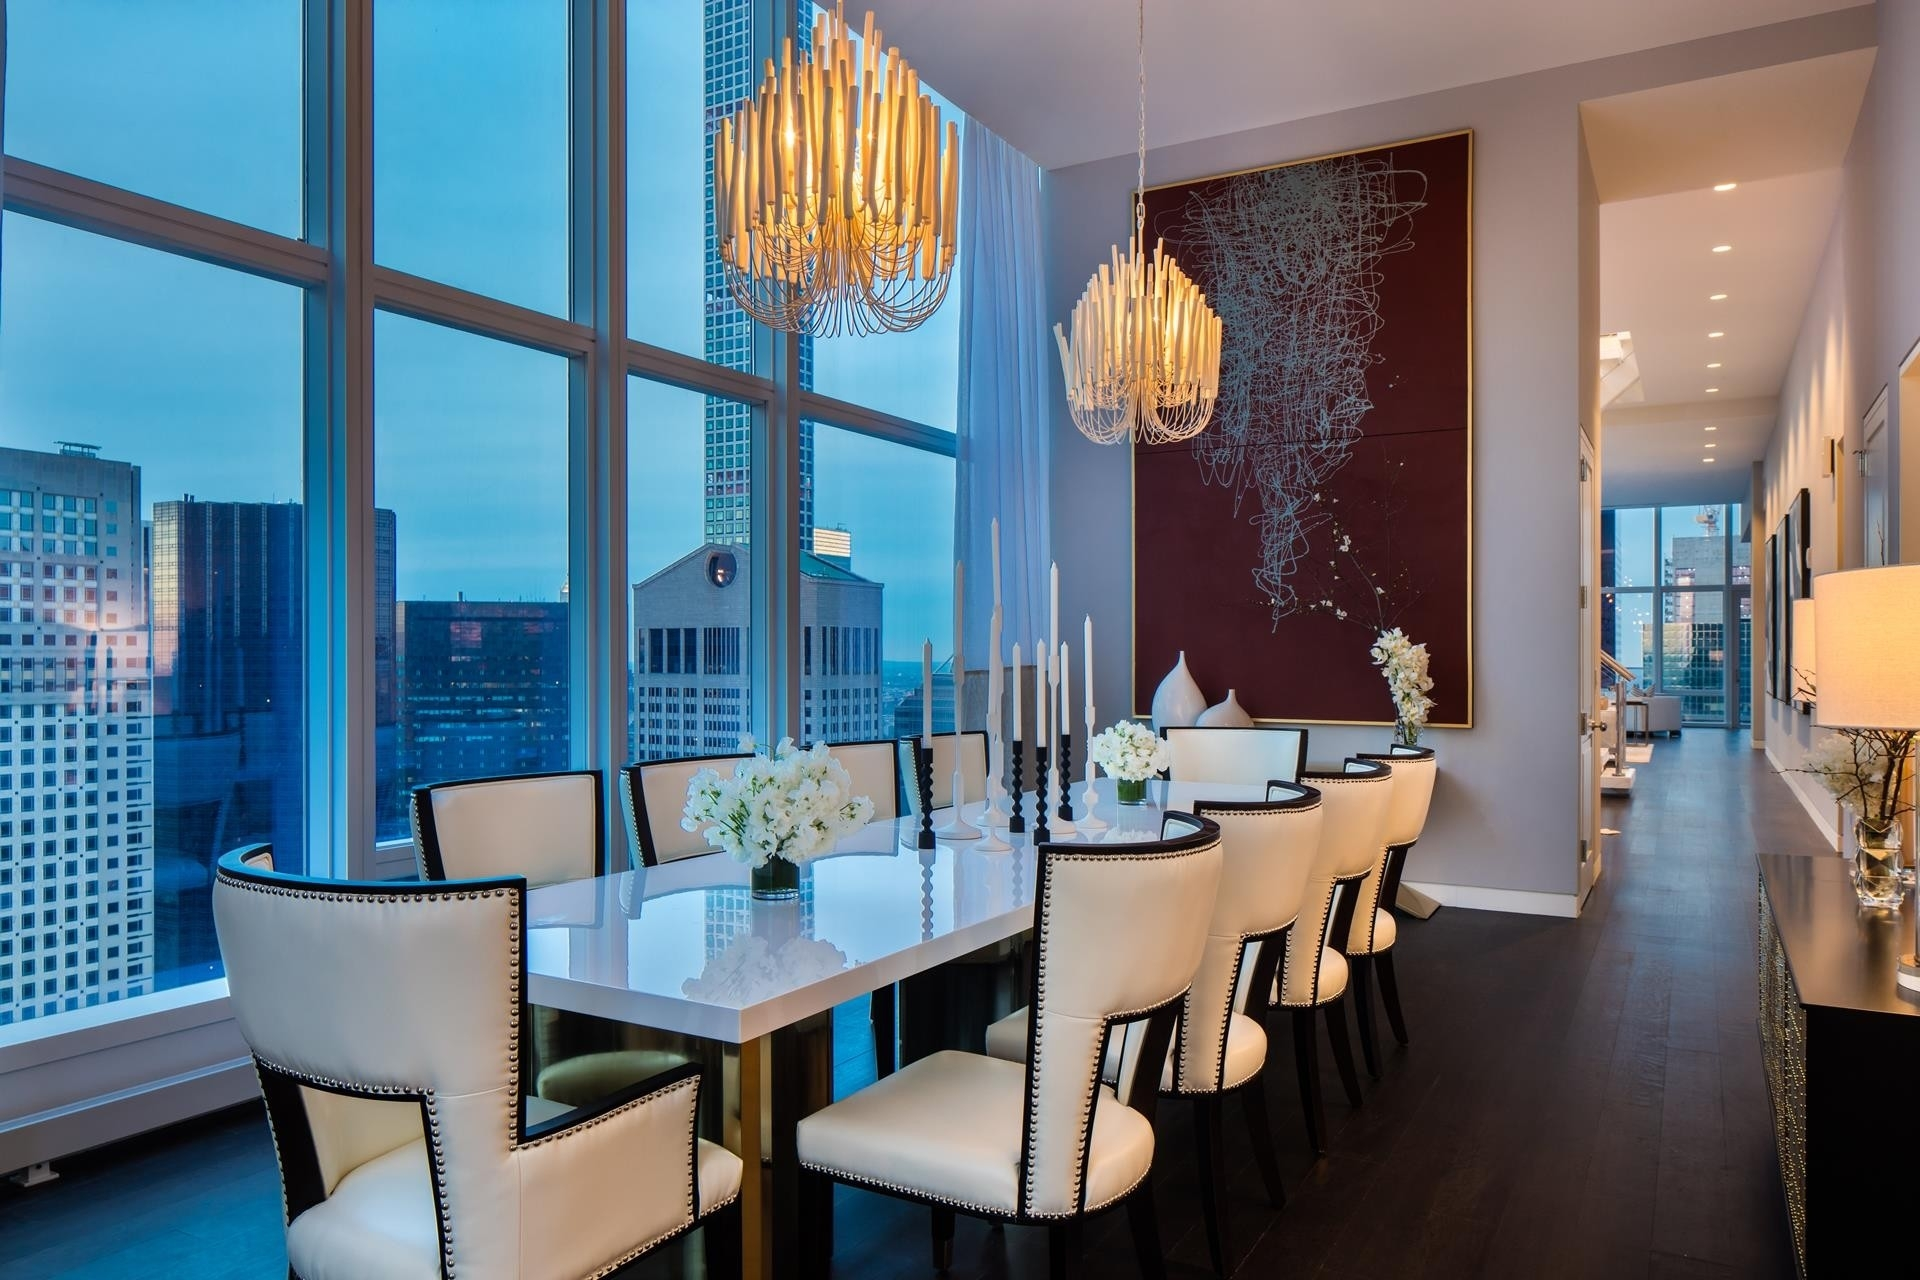 6. Condominiums for Sale at BACCARAT HOTEL & RESIDENCES, 20 West 53rd St, PH48/49 Midtown West, New York, NY 10019